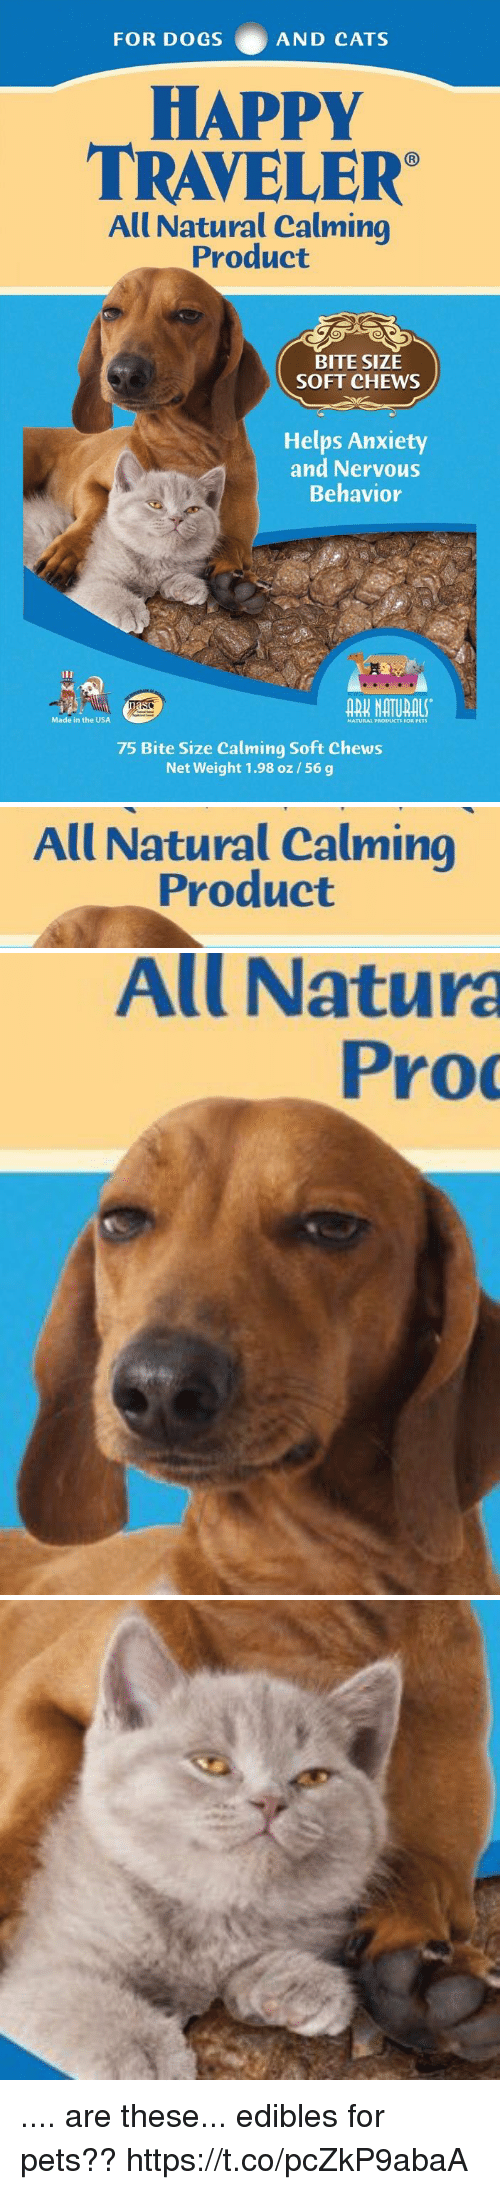 Cats, Dogs, and Anxiety: FOR DOGS AND CATS  HAPPY  TRAVELER  All Natural Calming  Product  BITE SIZE  SOFT CHEWS  Helps Anxiety  and Nervous  Behavior  Made in the USA  NATURAL PRODUCTS FOR PETS  75 Bite Size Calming Soft Chews  Net Weight 1.98 oz/56 g   All Natural Calming  Product   All Natura  Pro .... are these... edibles for pets?? https://t.co/pcZkP9abaA